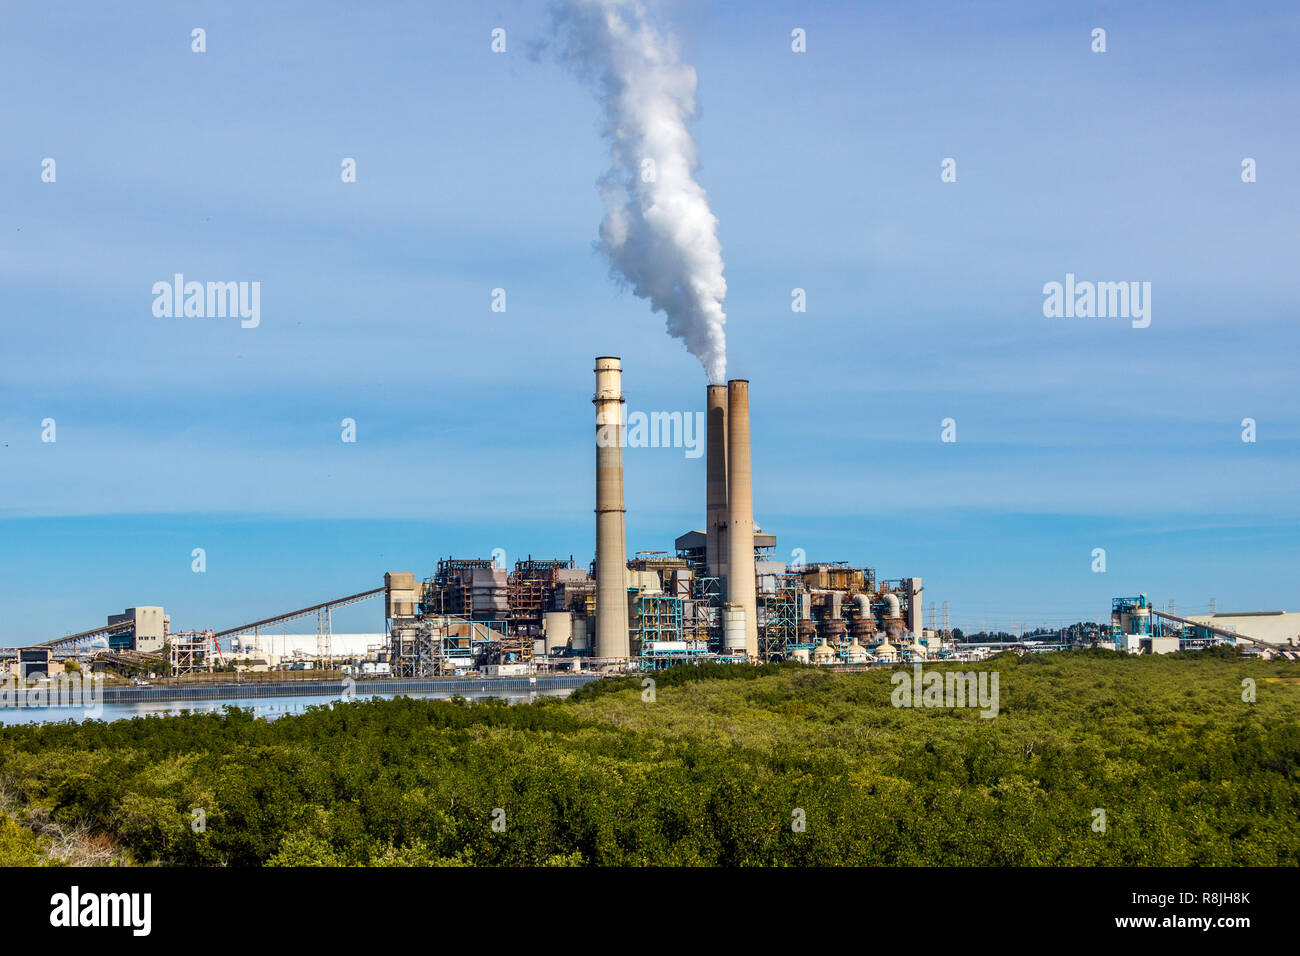 TECO Power plant with tall smoke stacks on a coastal plain. There is a manatee preserve and viewing center surrounding the plant. - Stock Image